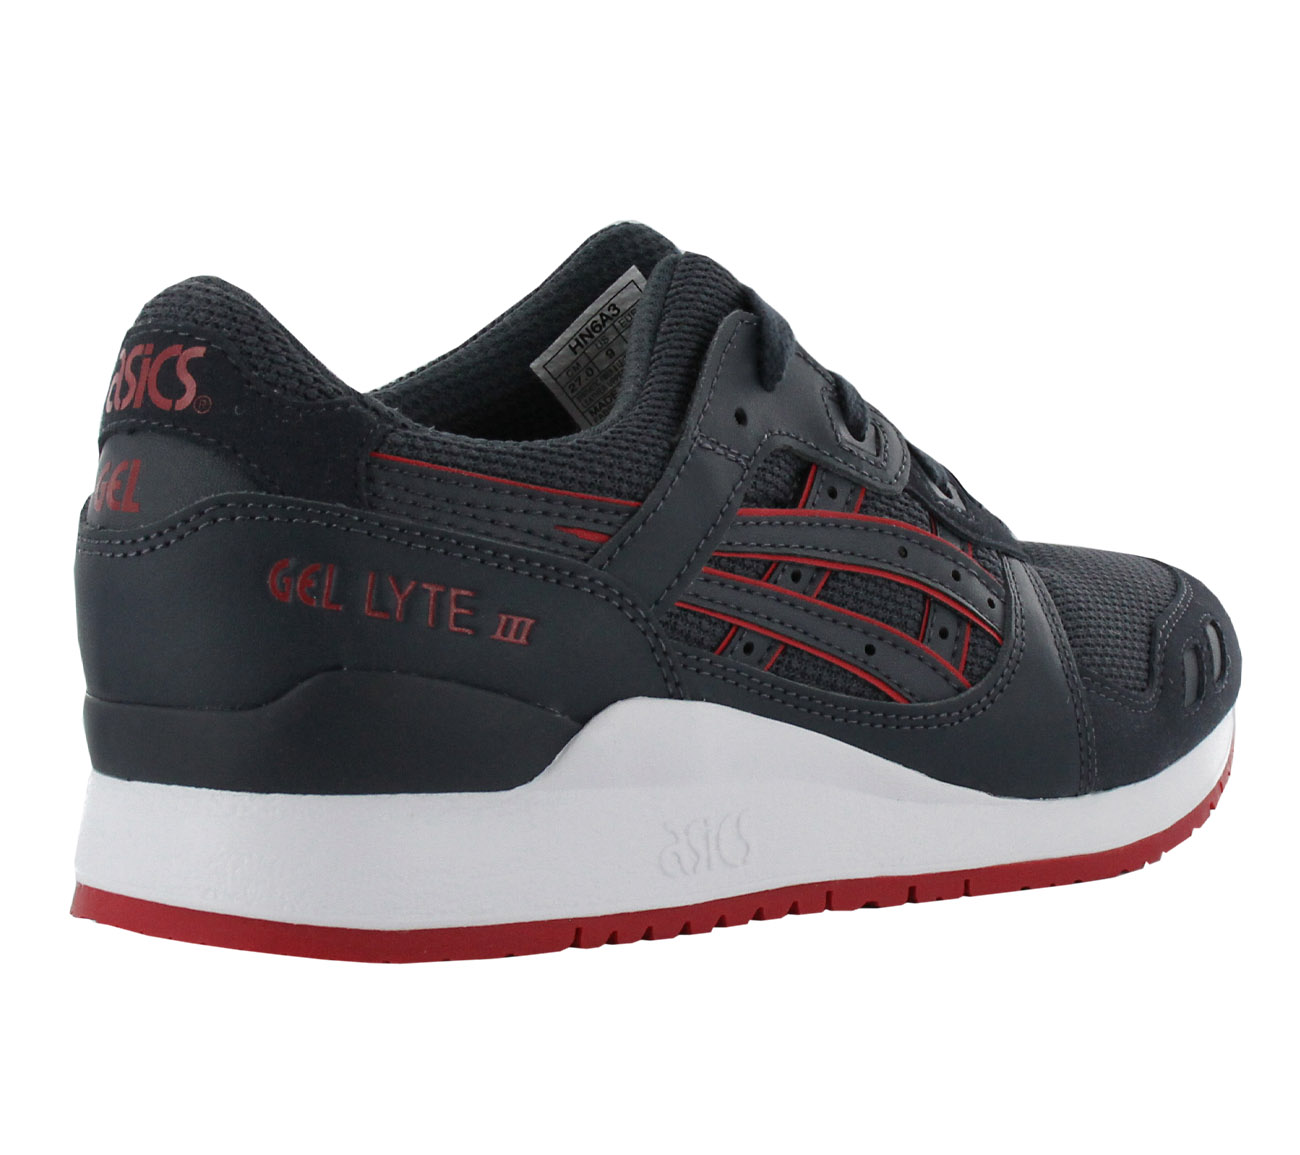 the latest bdfe1 bc492 Asics Gel-Lyte III 3 Shoes Men s Sneakers Navy Blue Gym Shoe New ...